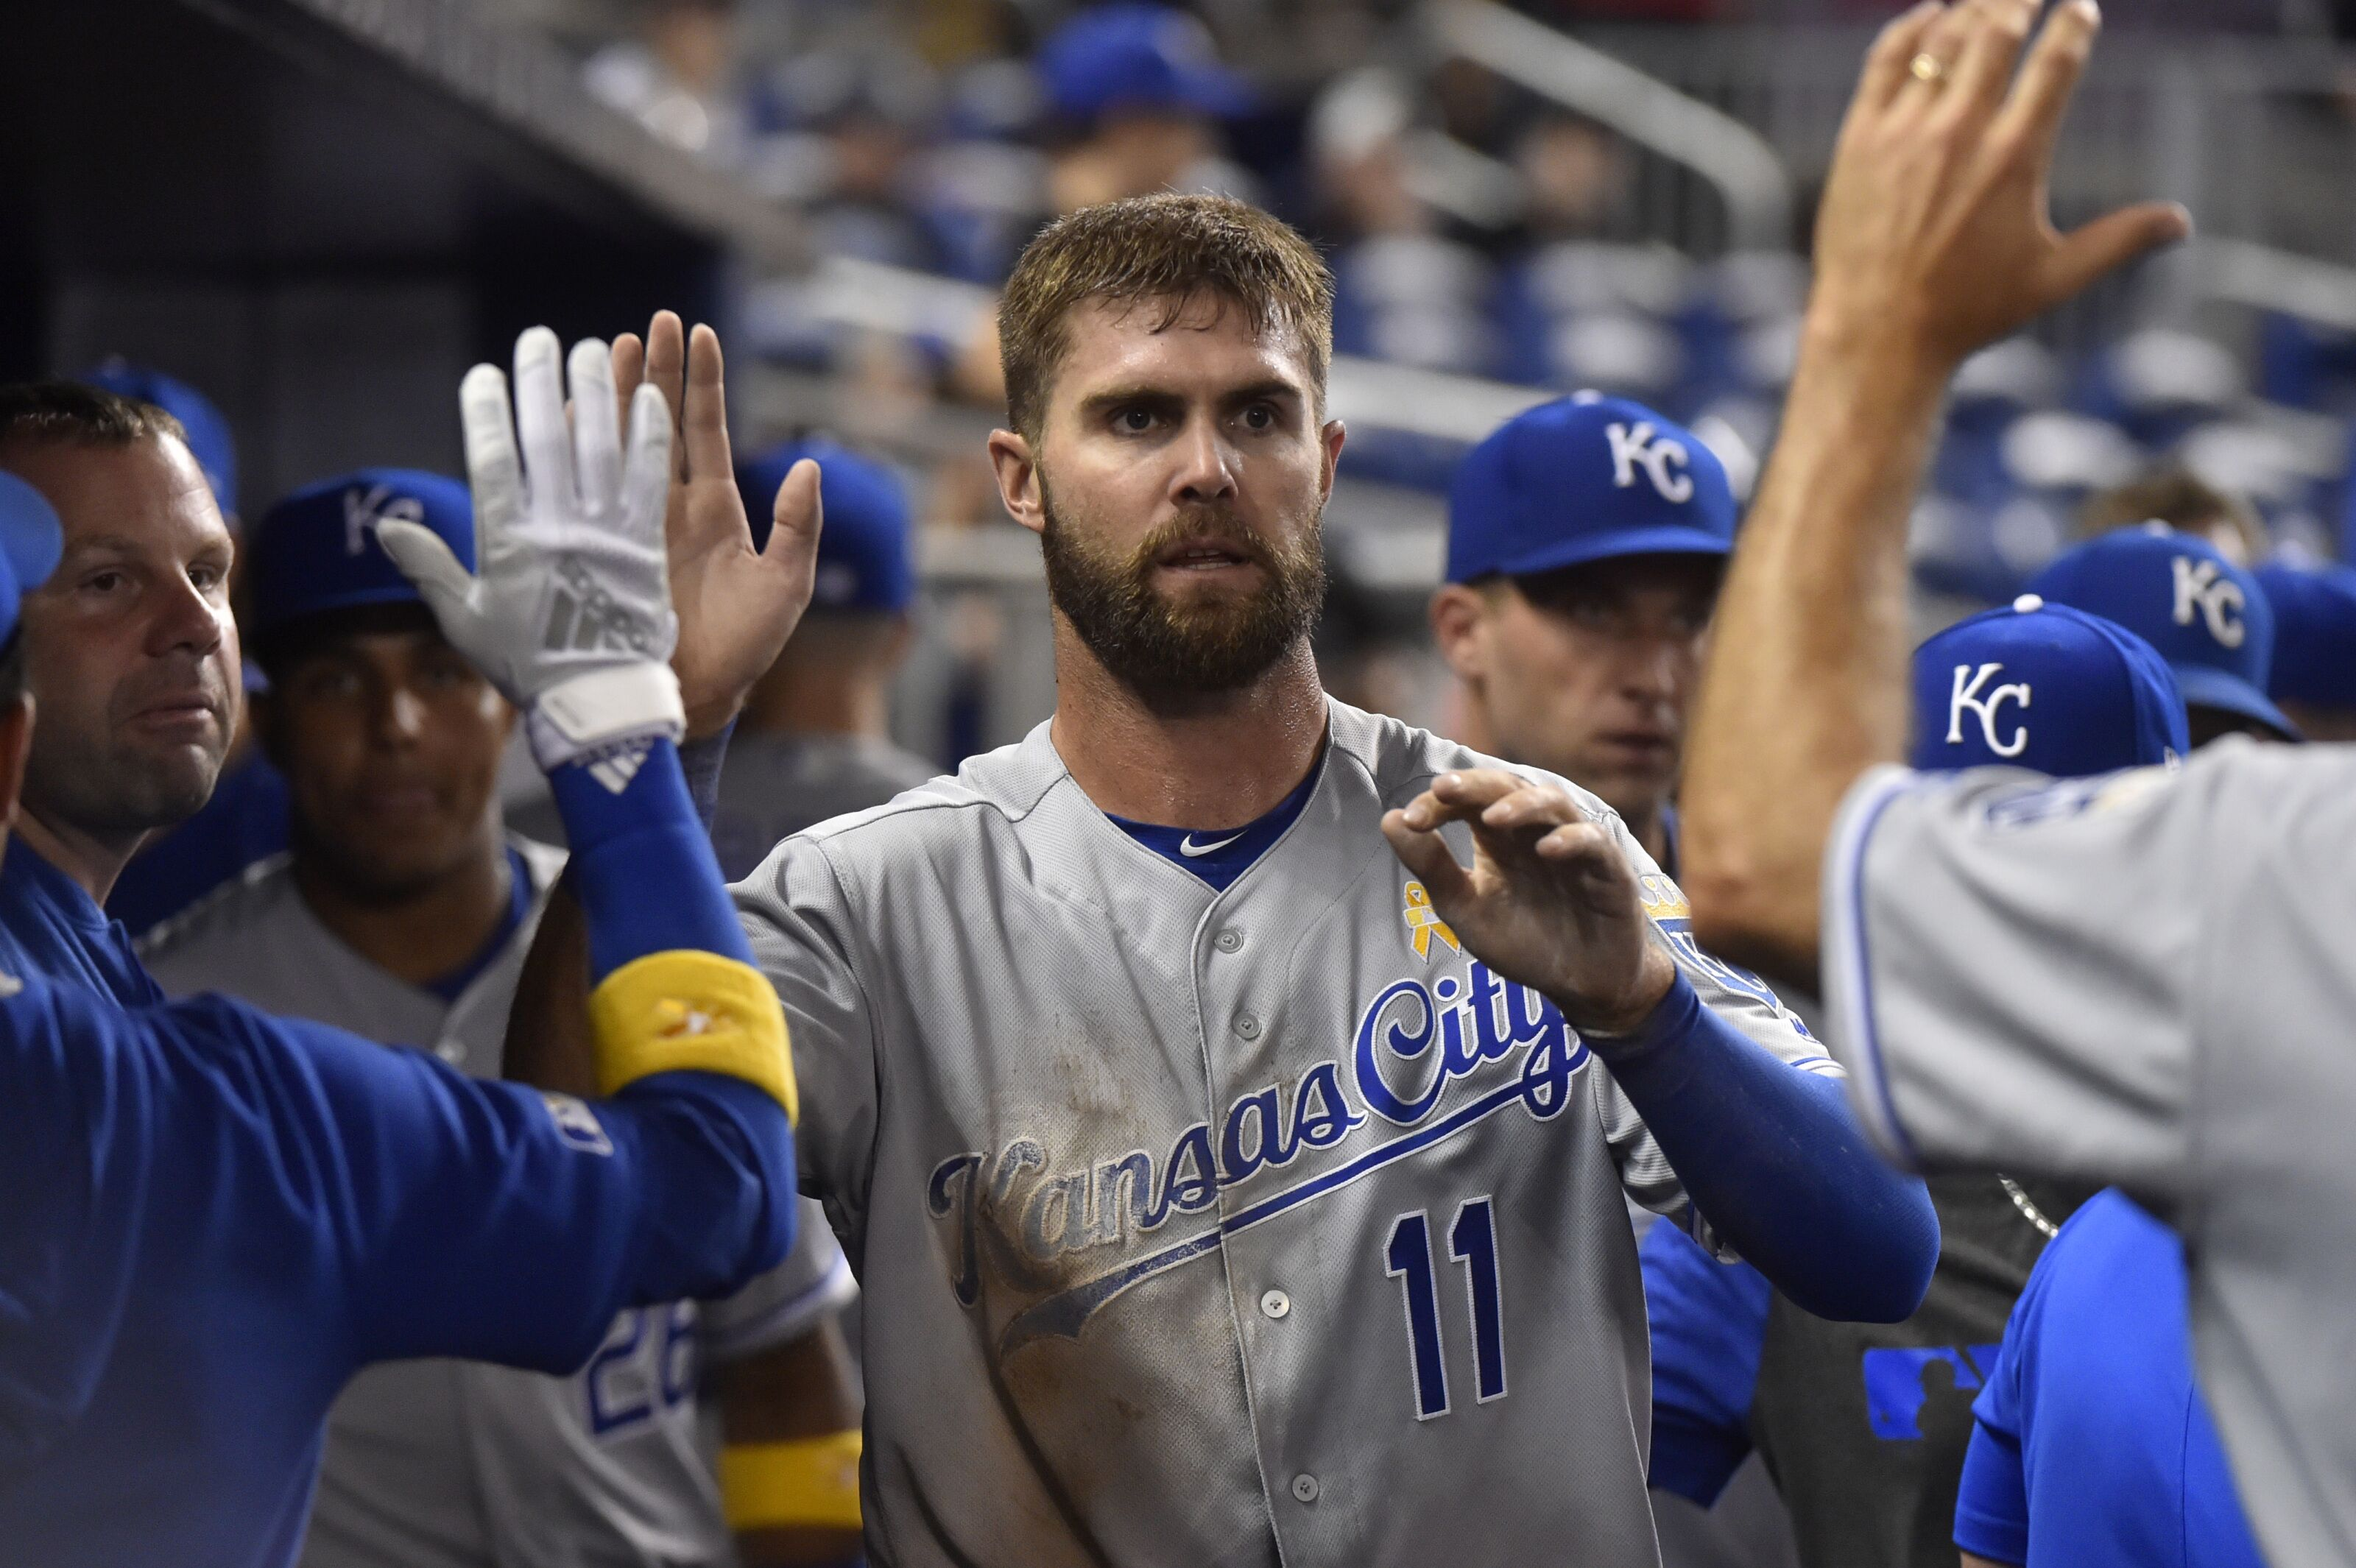 Kansas City Royals: Projecting the 2021 starting lineup